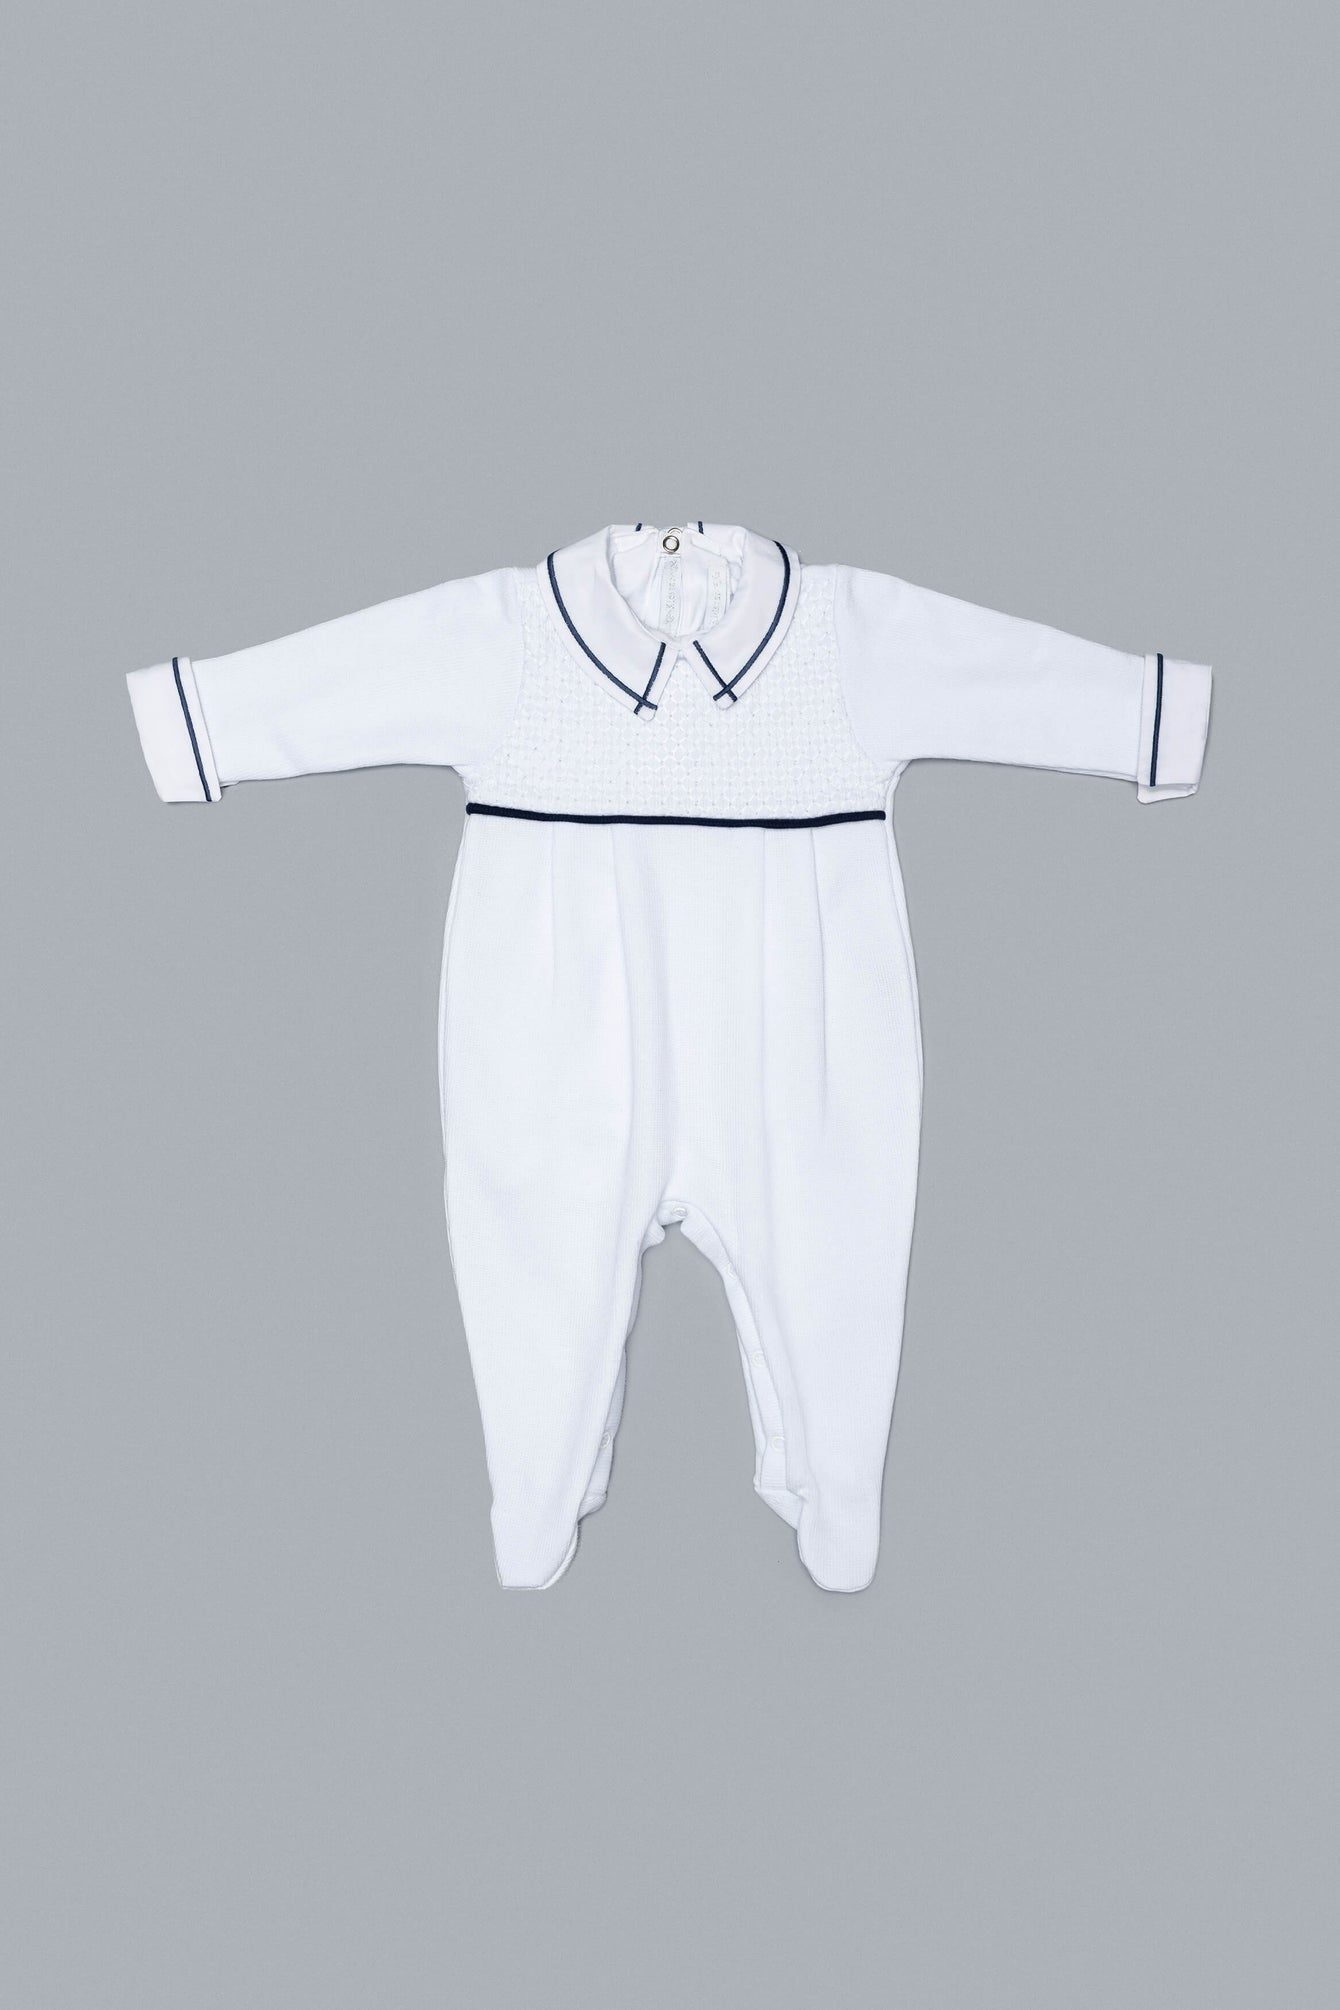 White and Blue Babygrow Set for Boys and Girls